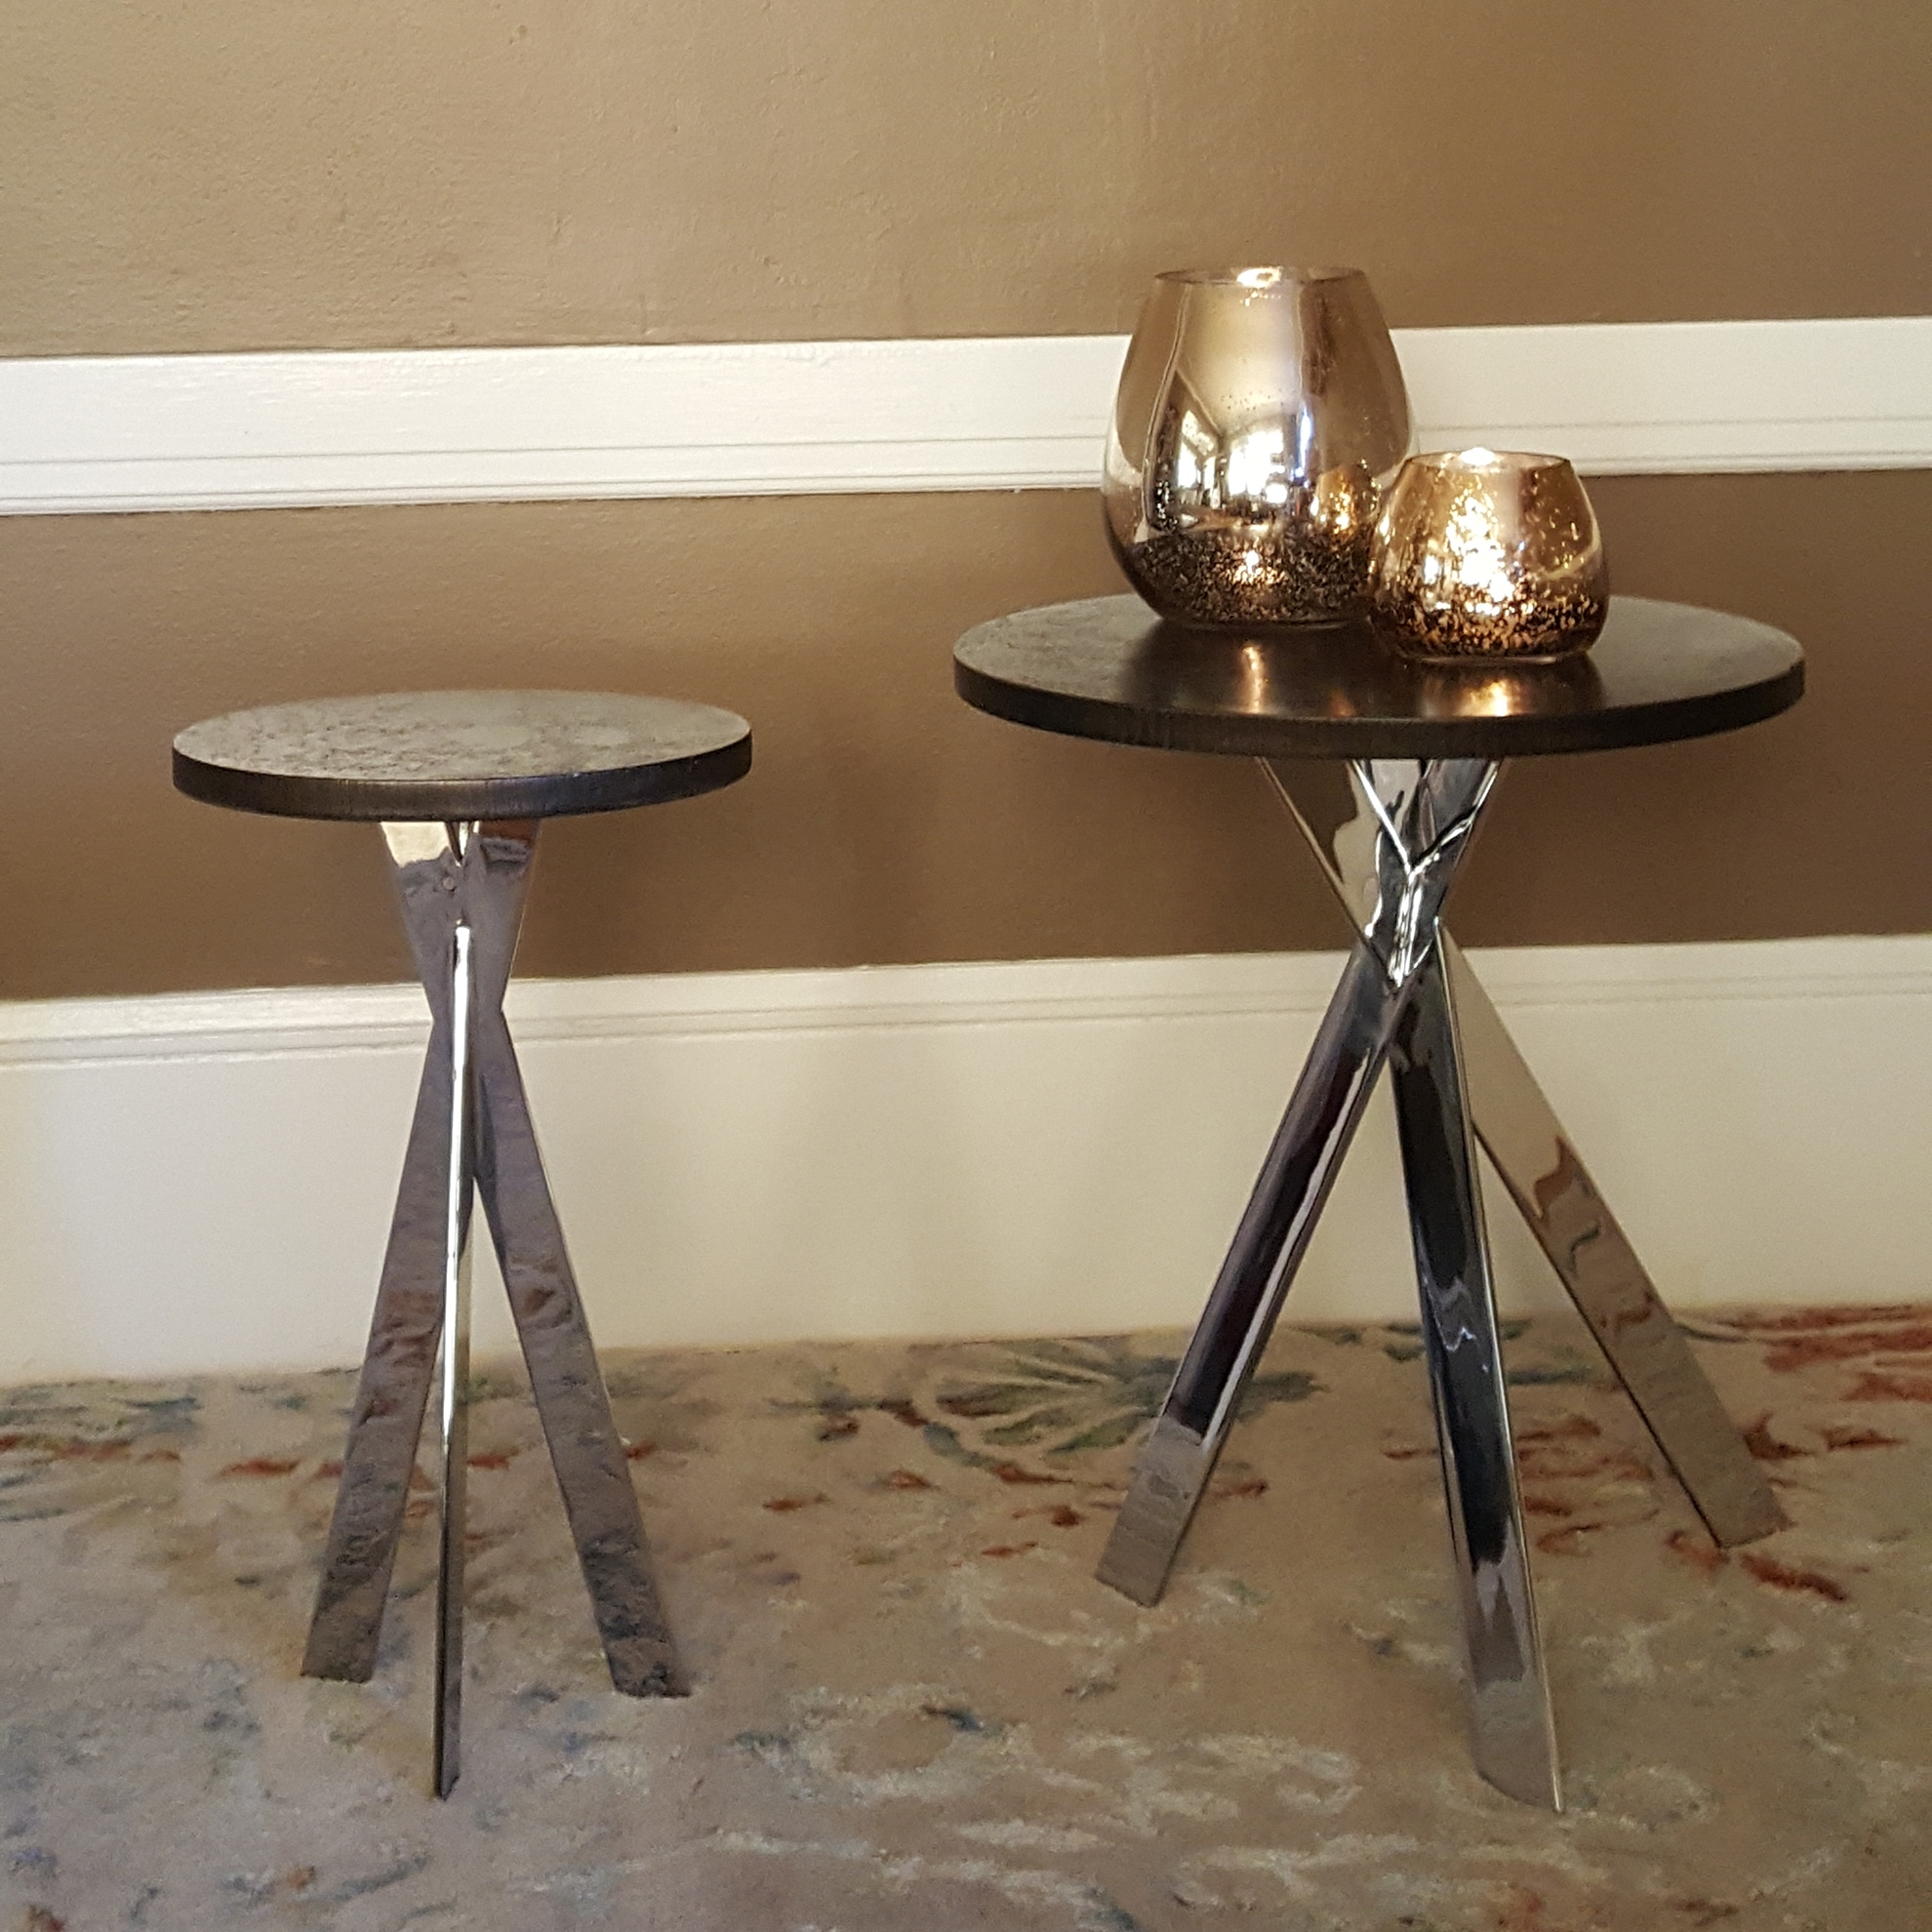 round tables, desk, wood, metalwork, metal work, metal fabrication, bay area metalworker